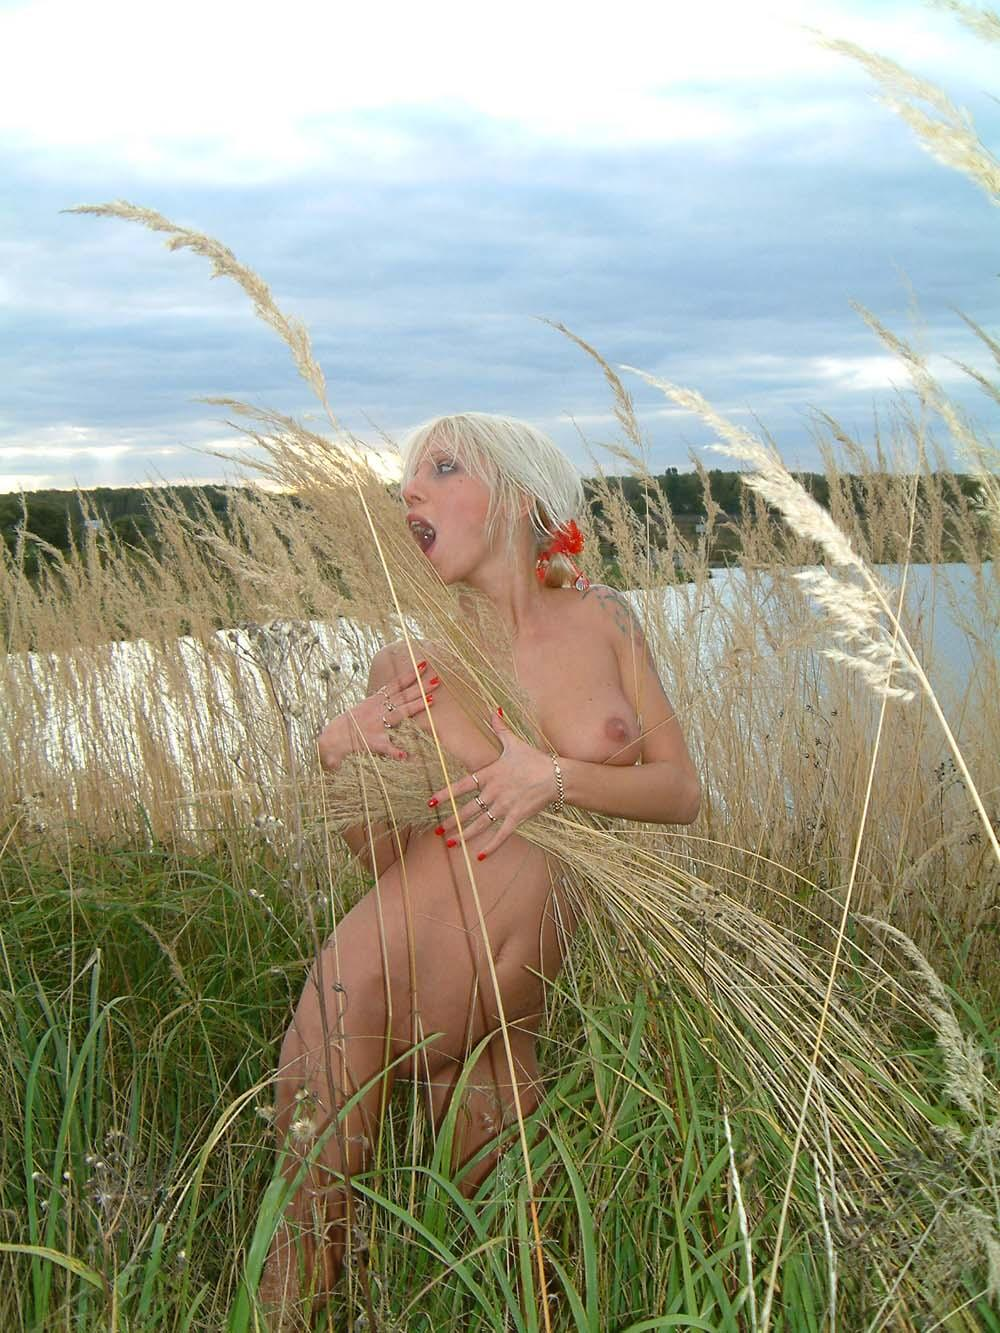 from Yusuf hot short blonde woman nude